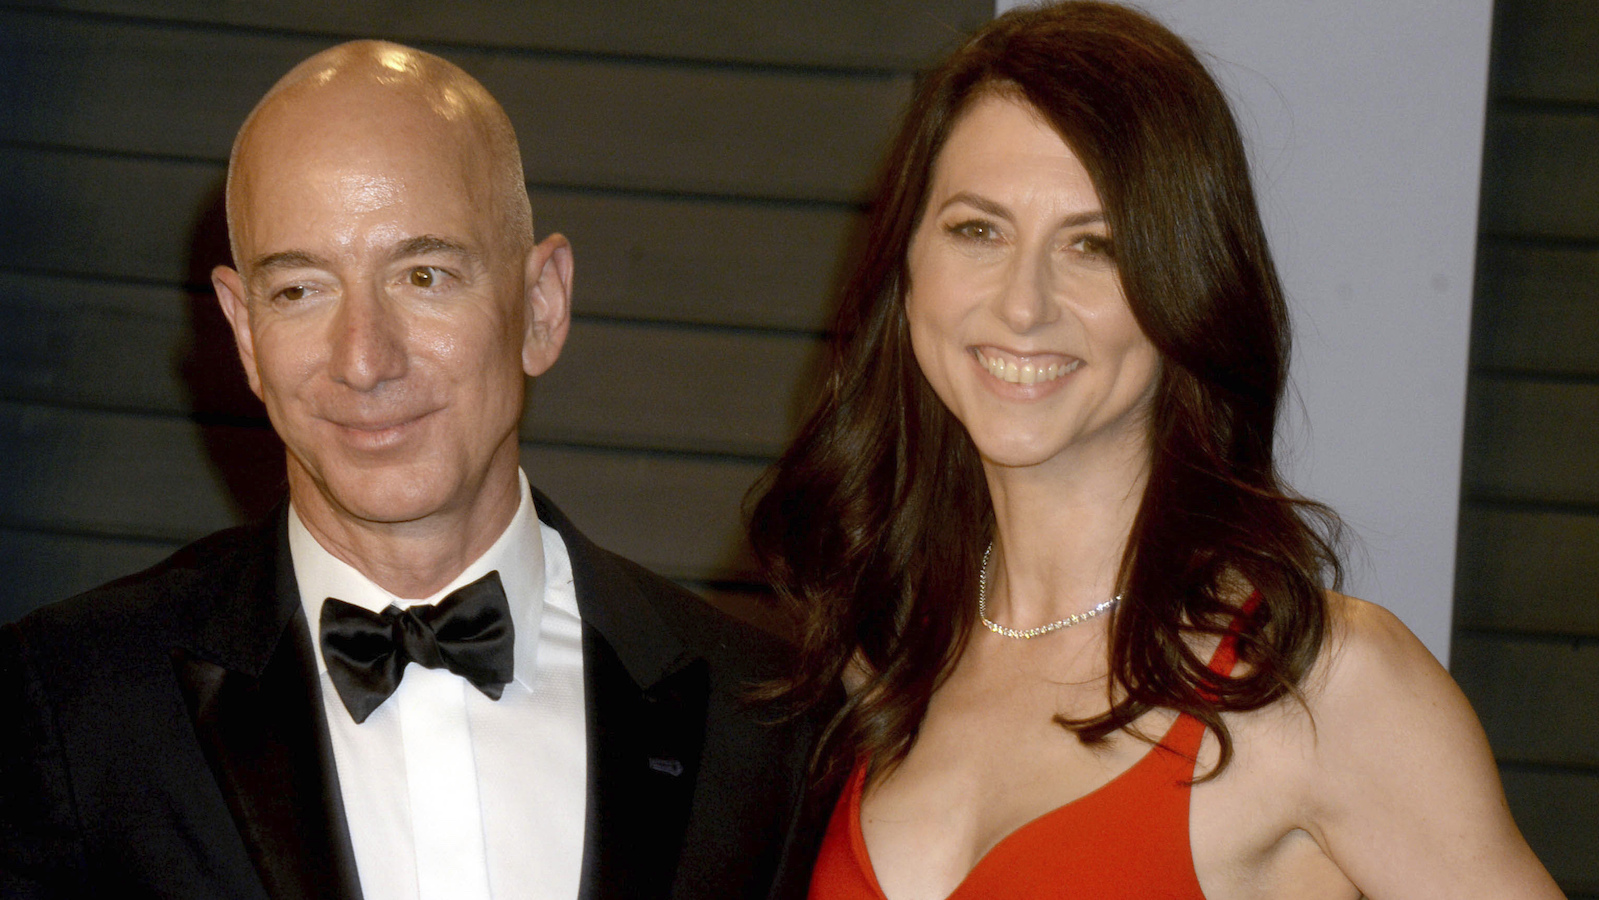 A freshly divorced MacKenzie Bezos explains why she's giving away most of her money